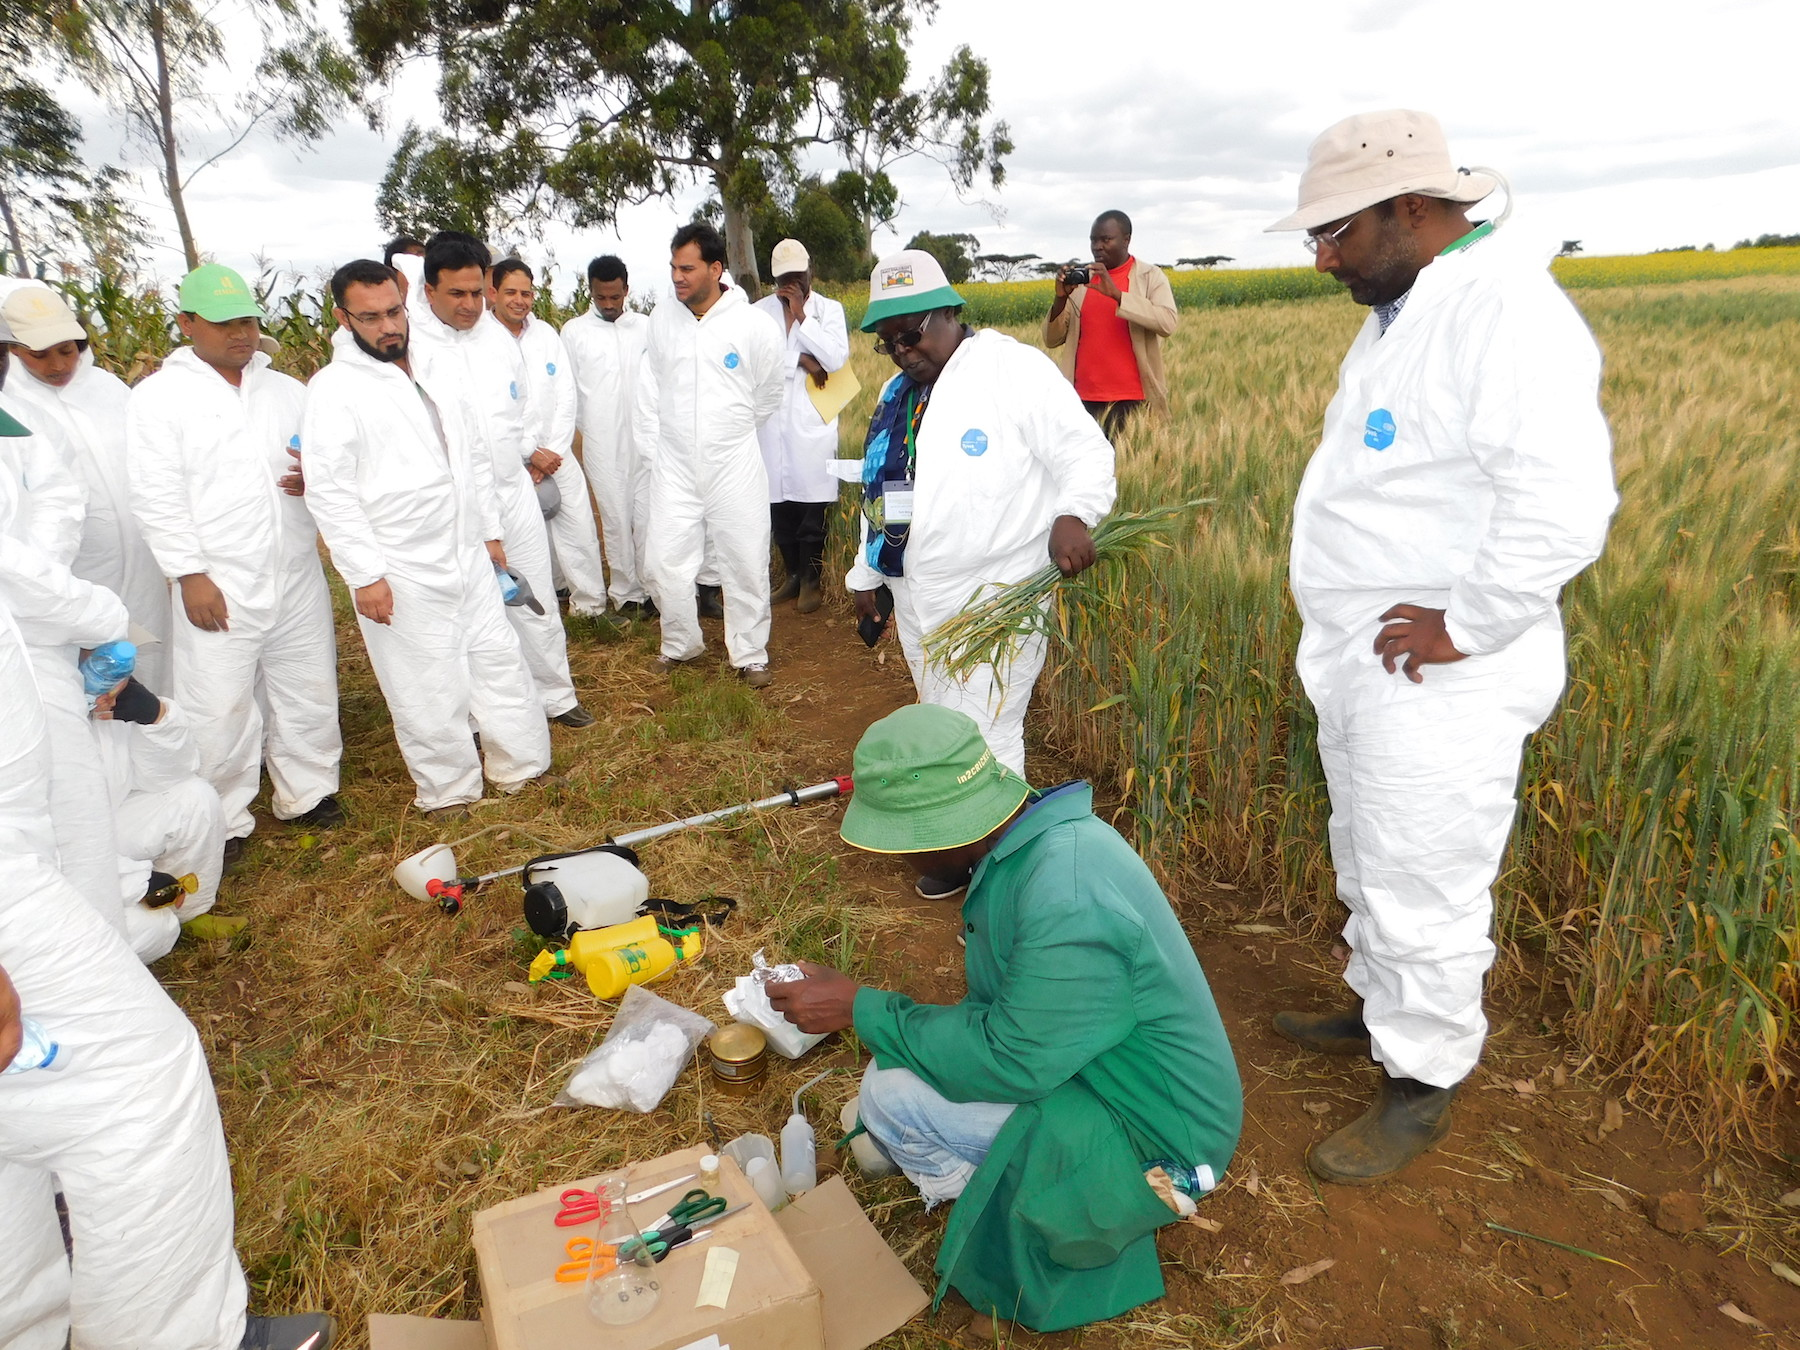 Scientists Ruth Wanyera (center) and Mandeep Randhawa (right) demonstrate stem inoculation devices. (Photo: KALRO)